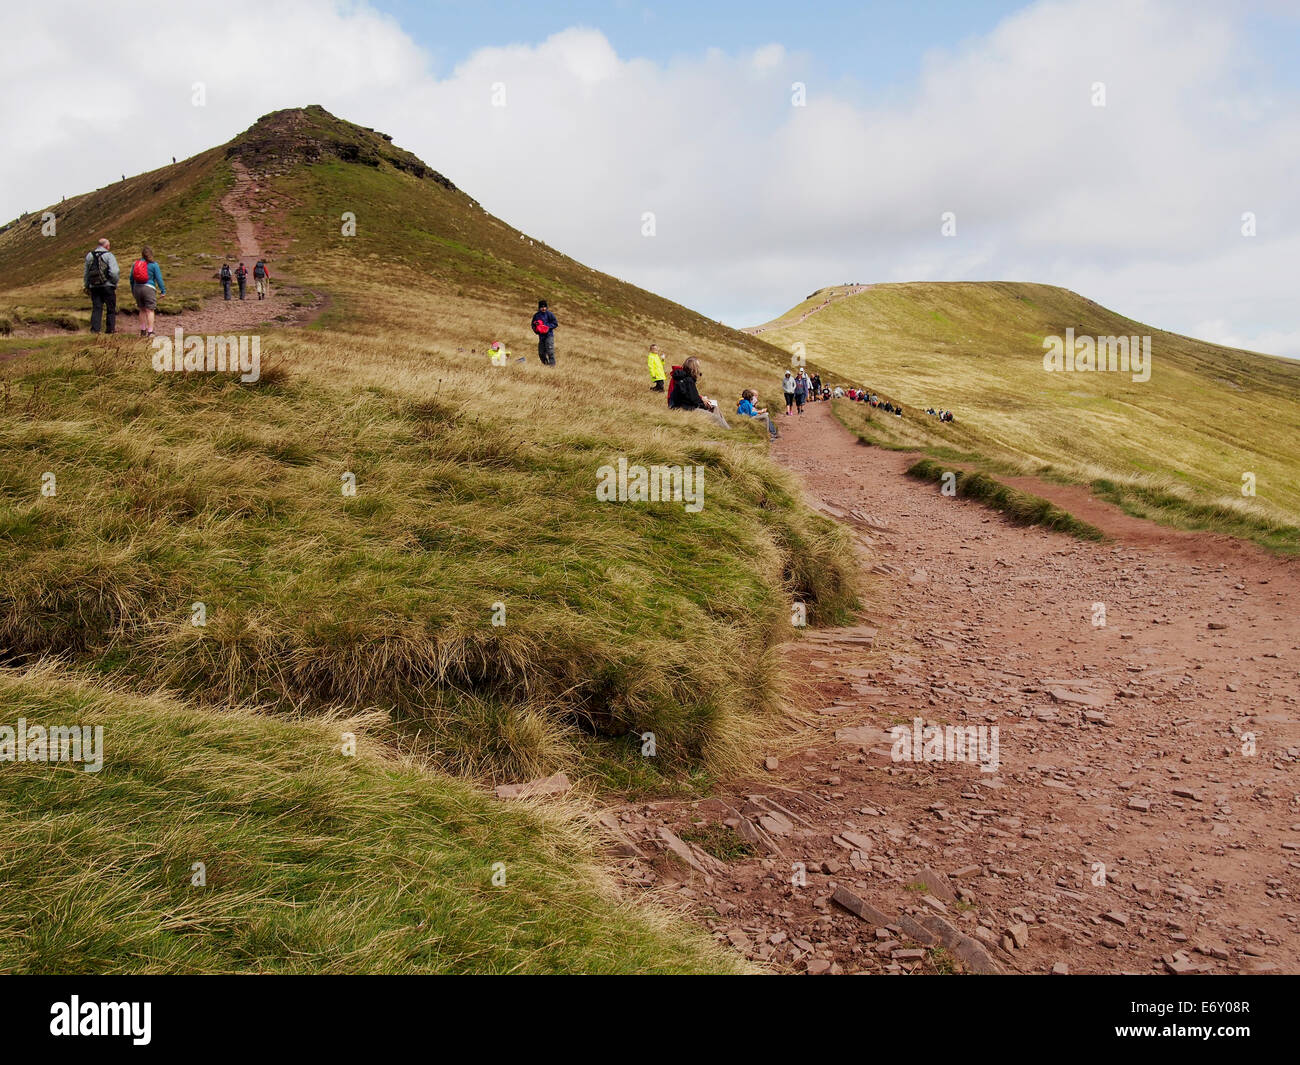 Hill walking on the Brecon Beacons. Summit of Corn Du (left) and Pen y Fan (right) with hill walkers on a summer - Stock Image